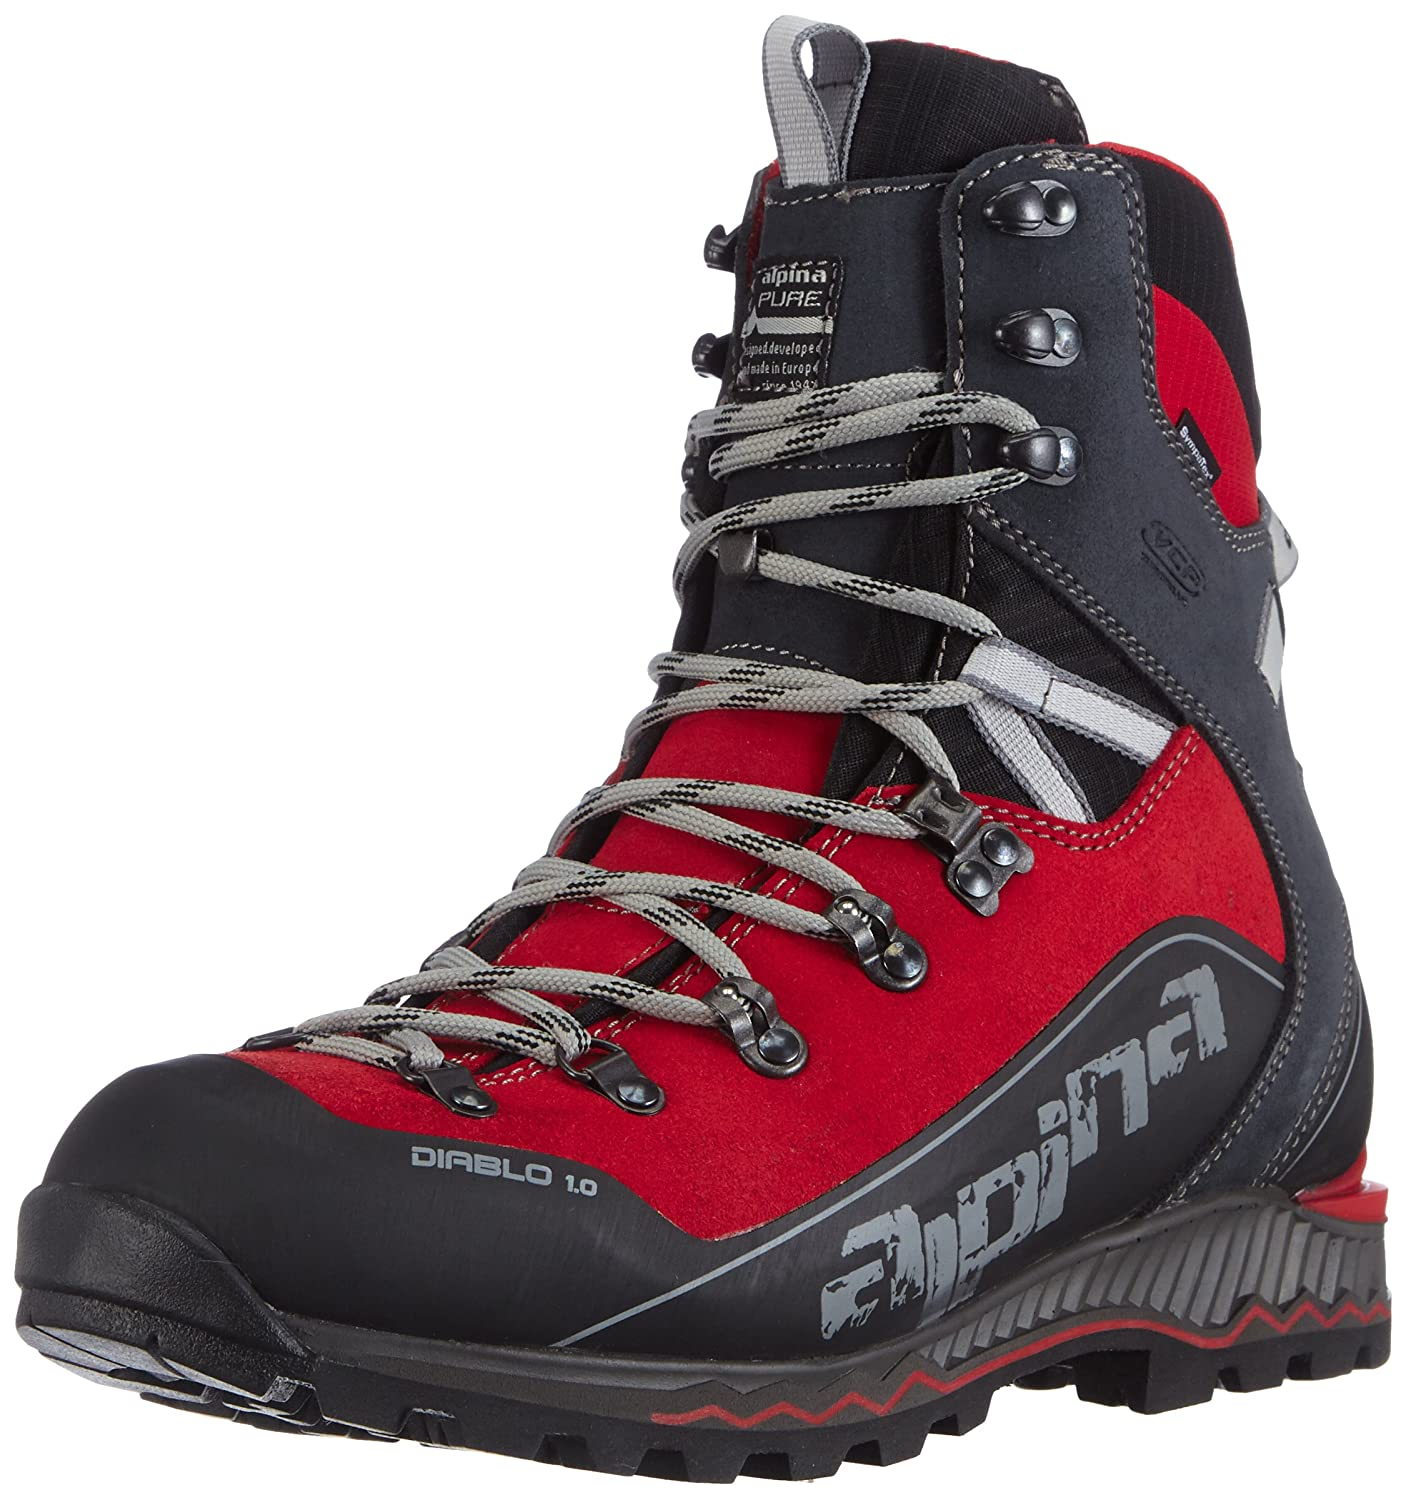 Alpina Mens Trekking And Hiking Boots Red Rot UK - Alpina boots